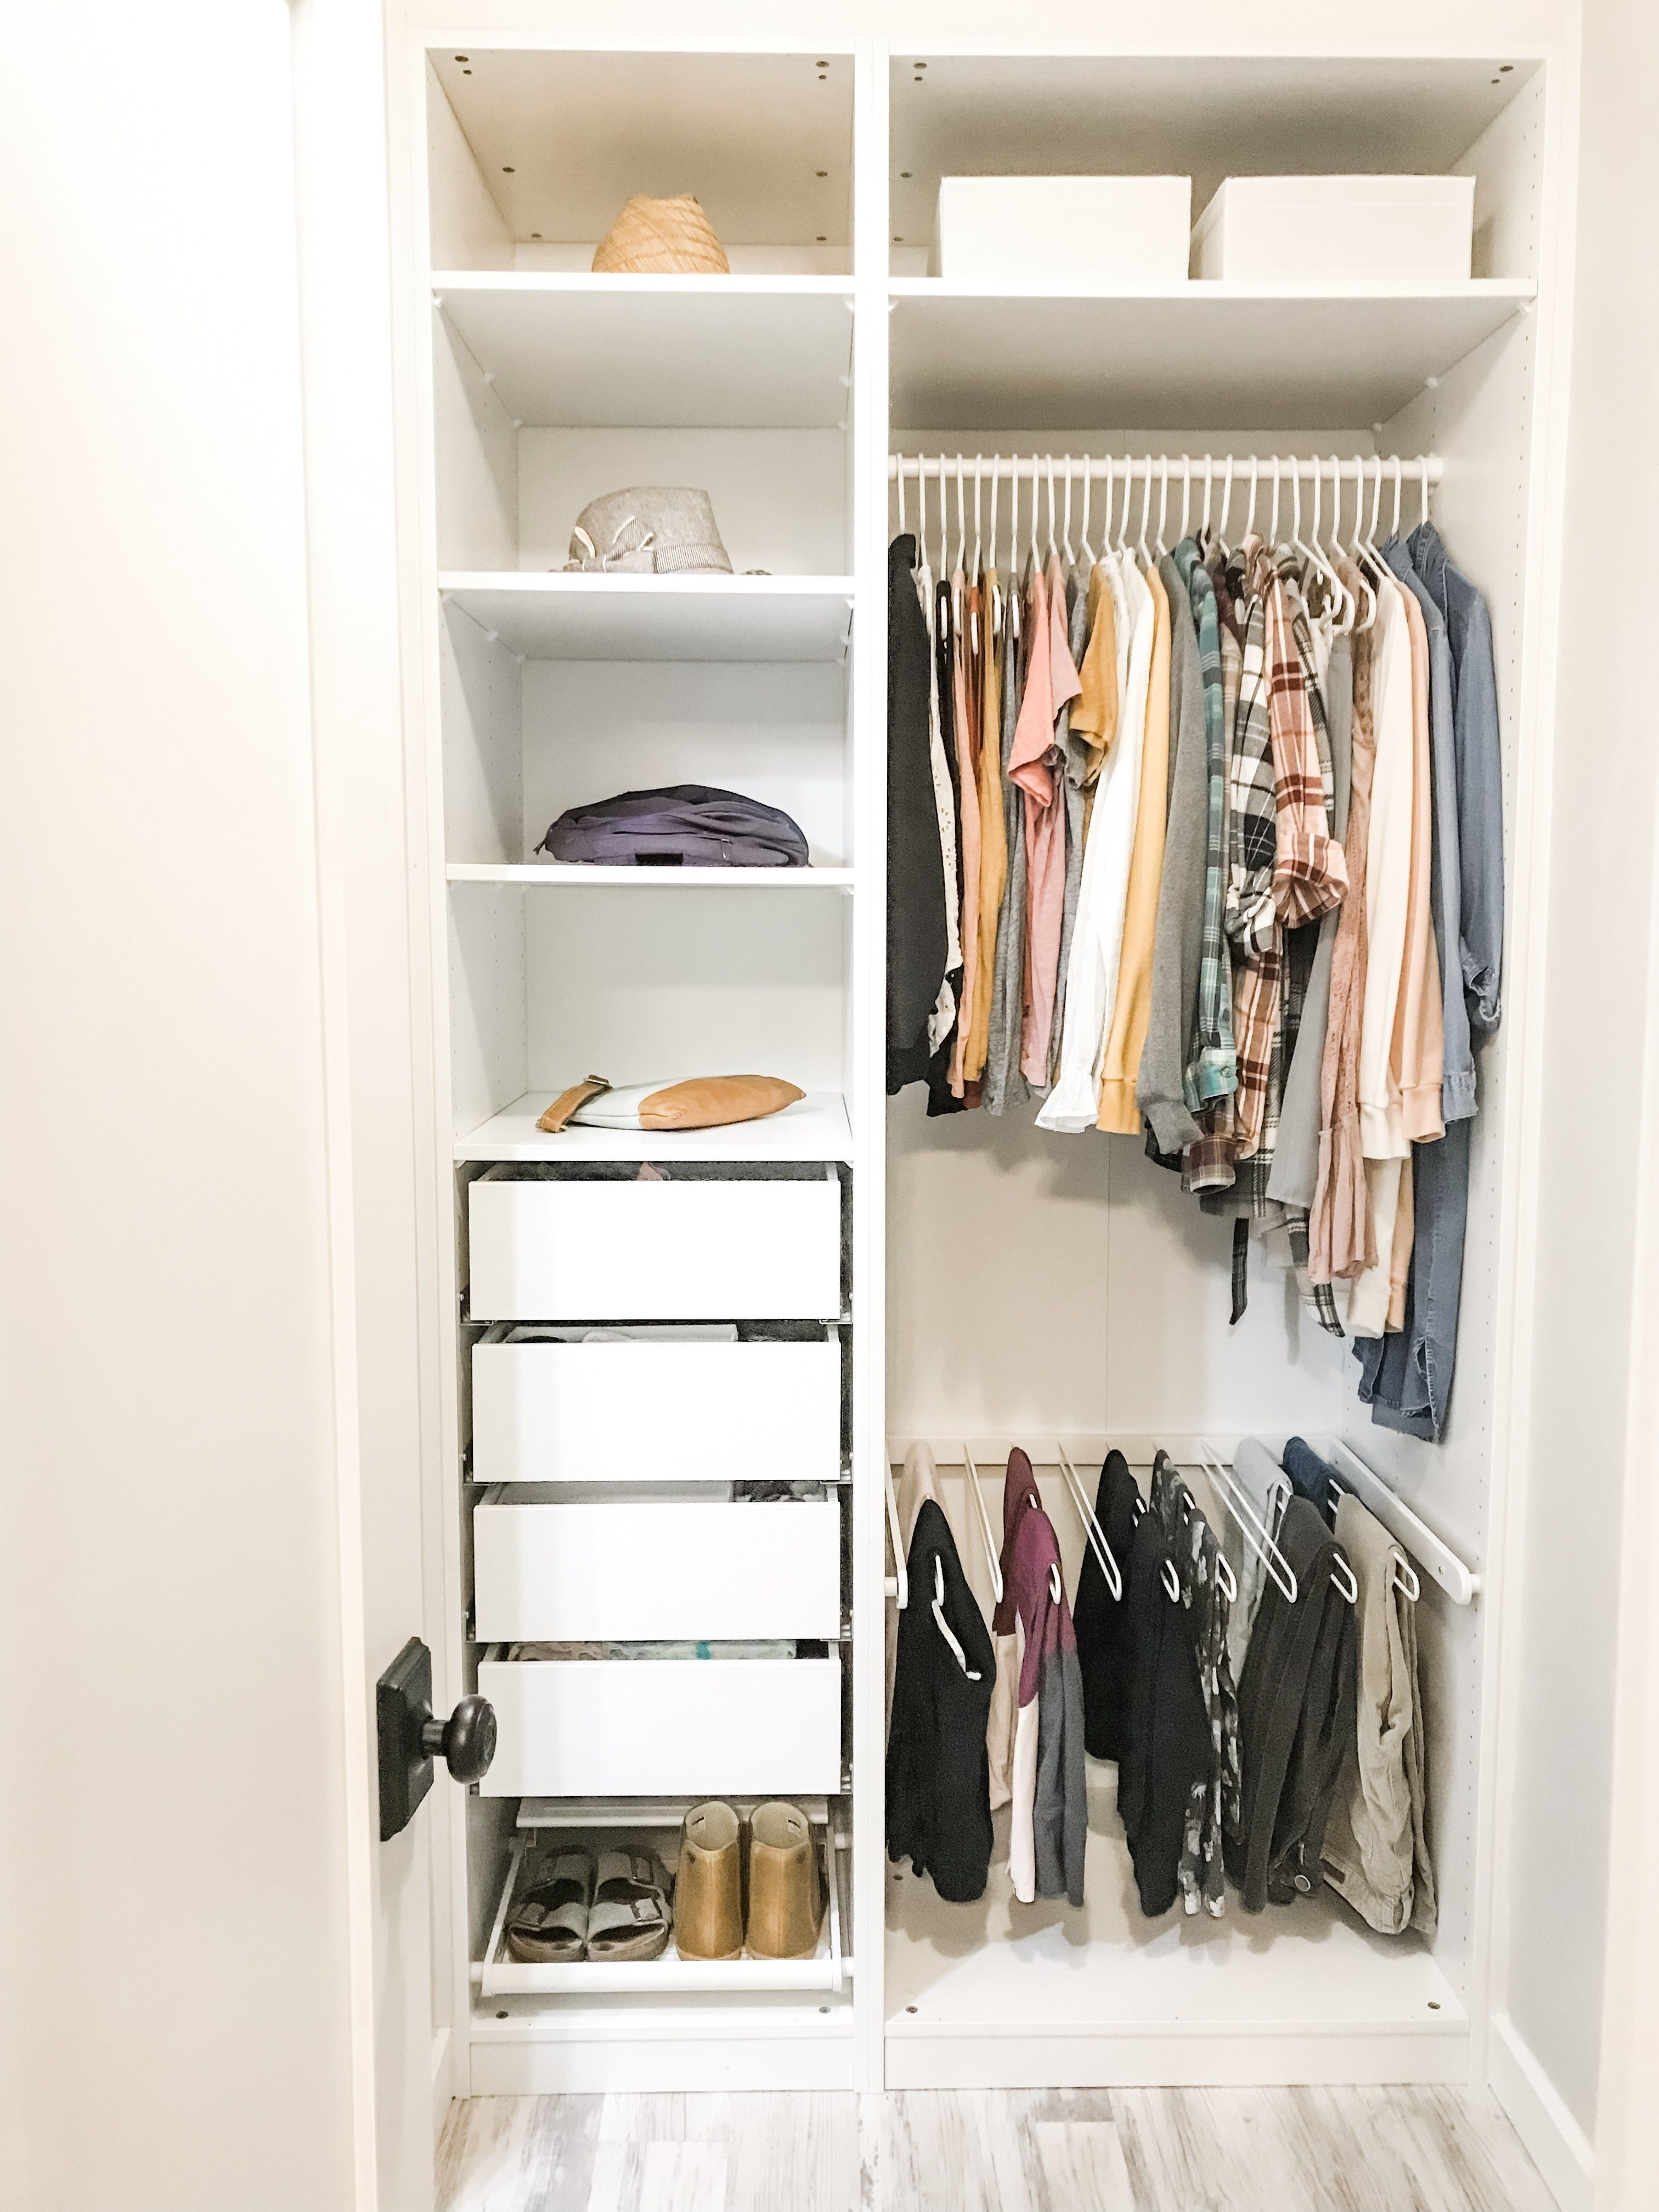 48 Adorable Diy Wardrobe Ideas That You Can Try Asap In 2020 Wardrobe Room Closet Layout Small Closet Space